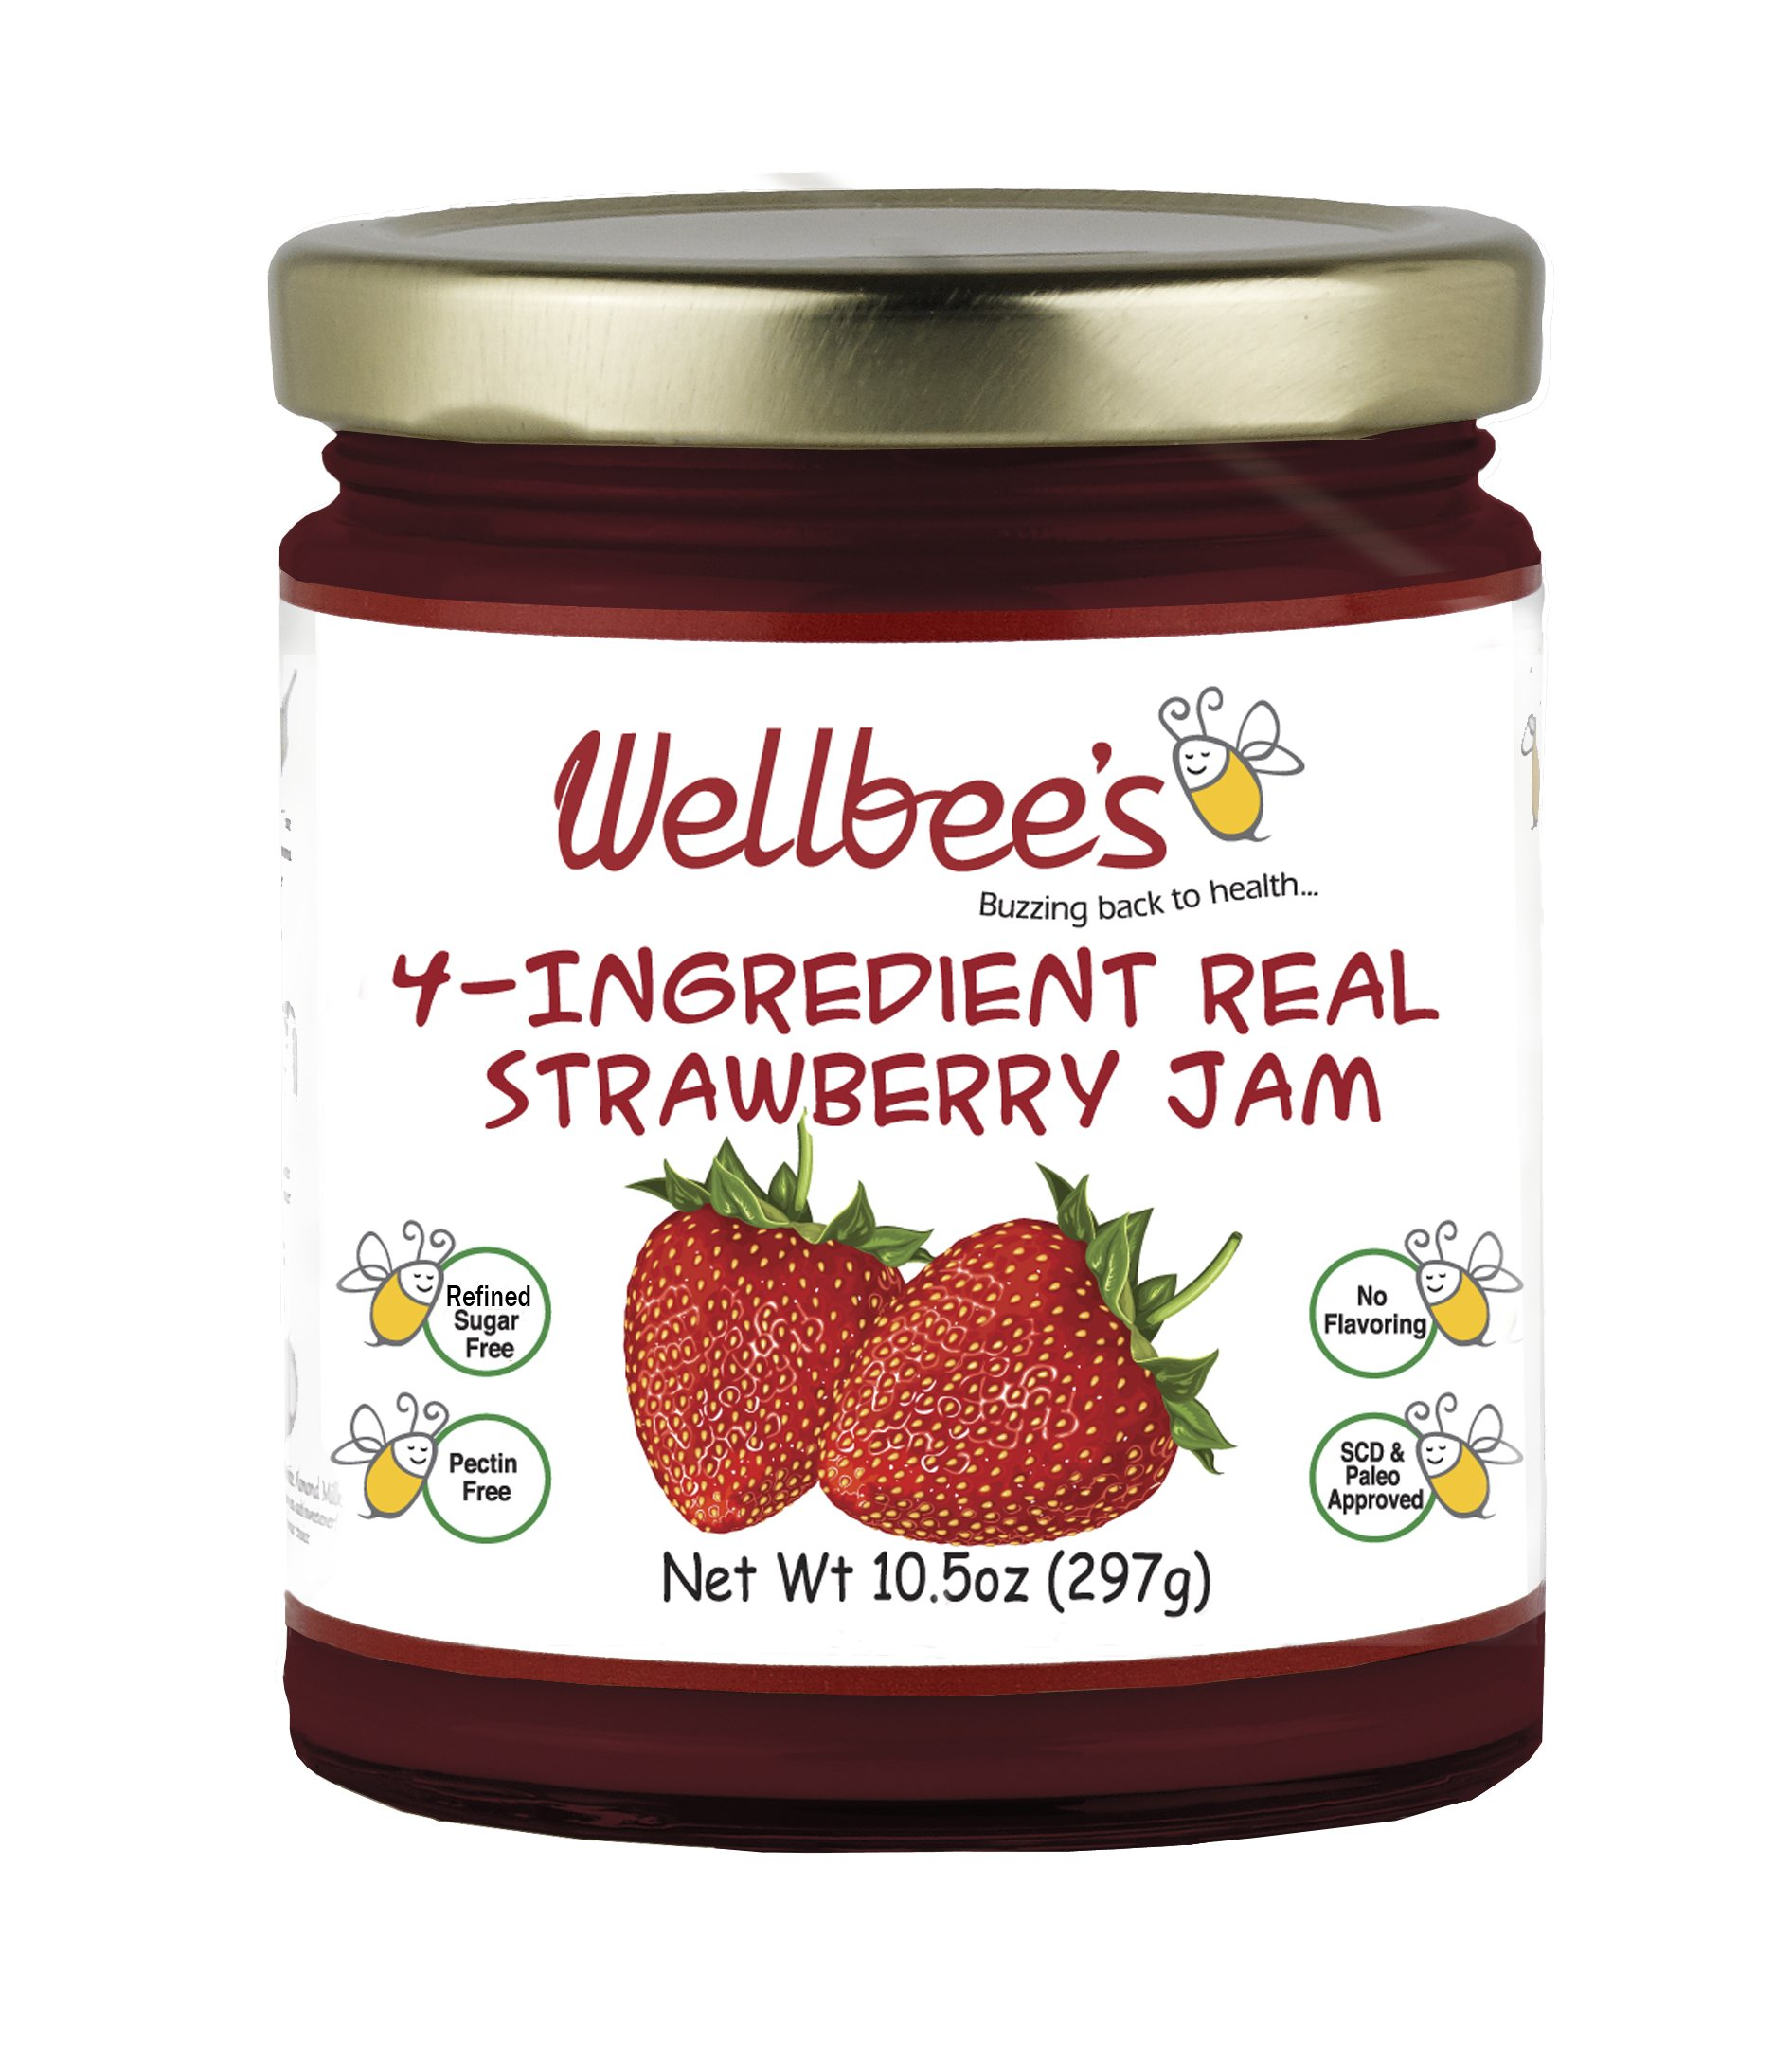 Wellbee's Real Strawberry Jam - Refined Sugar Free & Preservative Free by Wellbee's